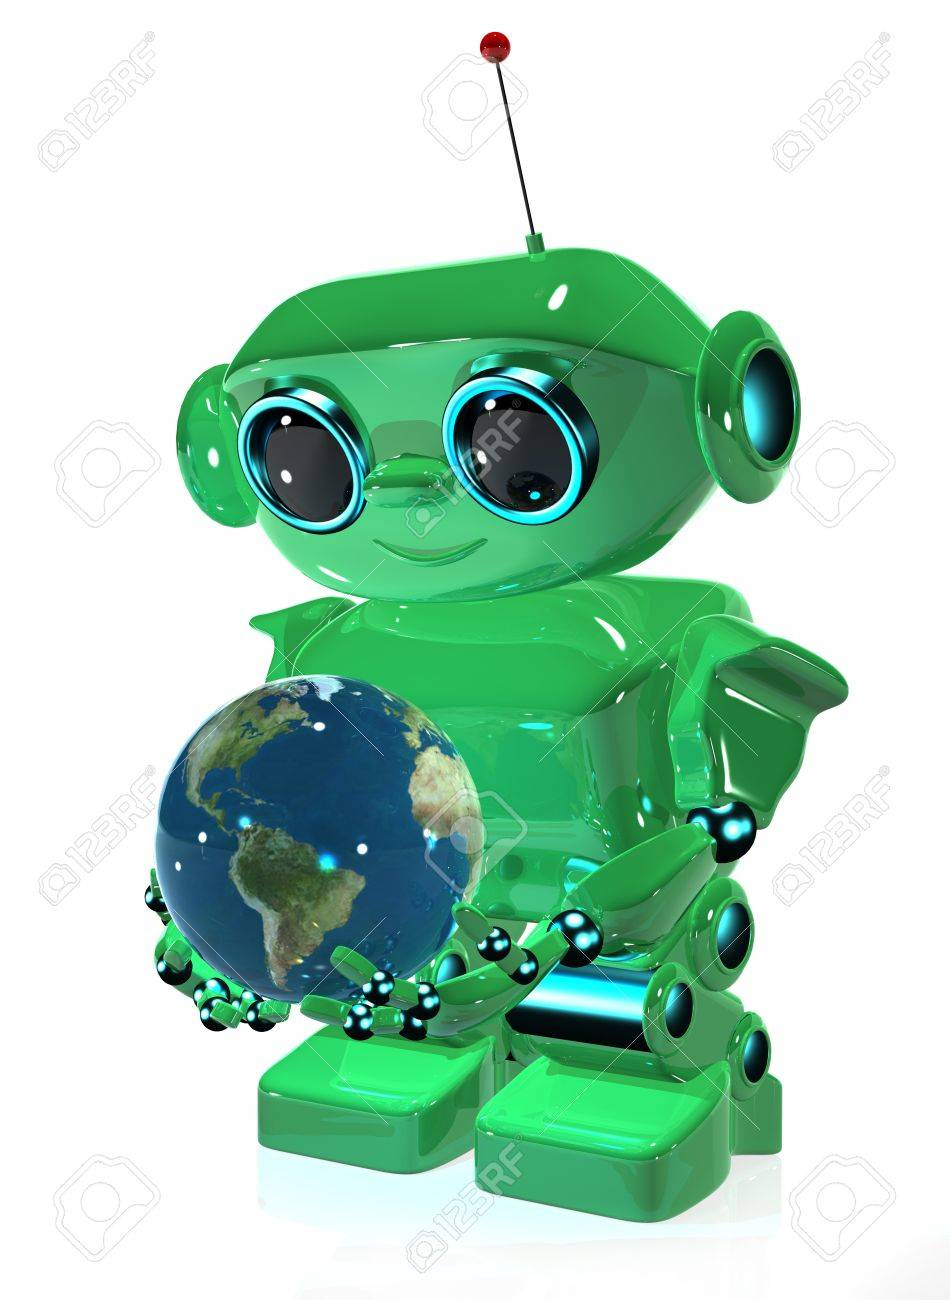 3d illustration green robot with antenna and globe Stock Photo - 16232228